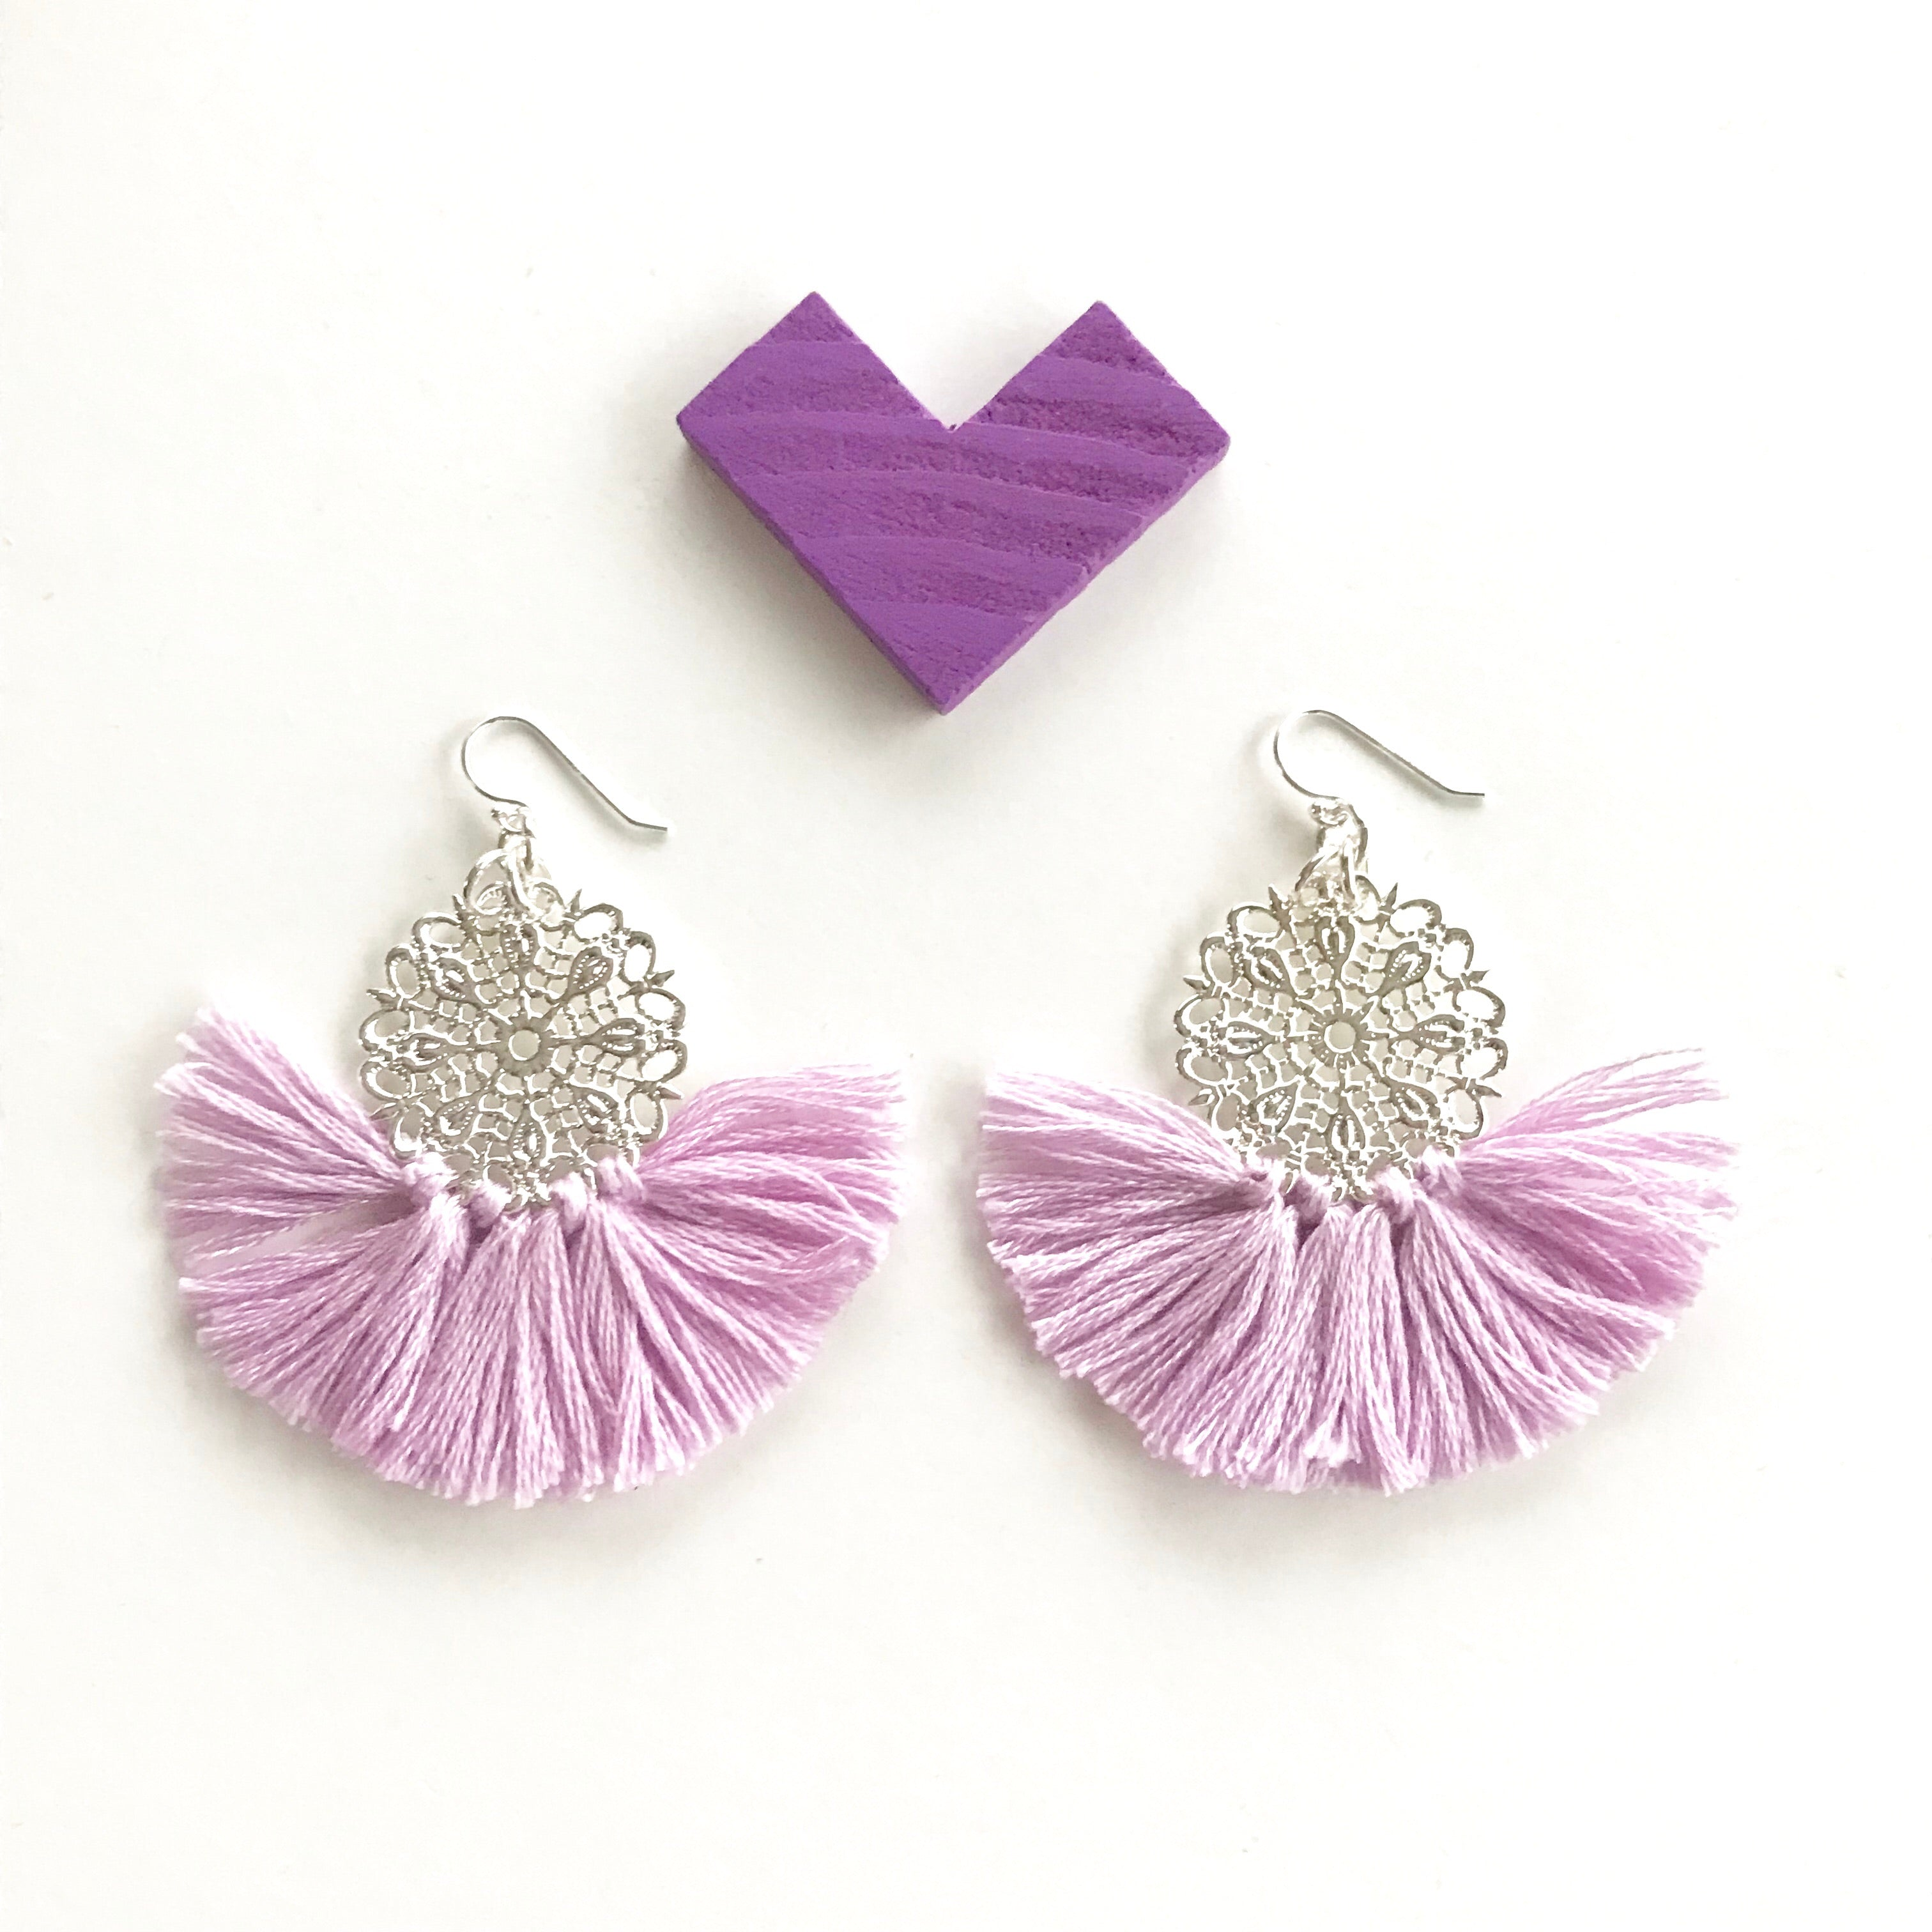 Ballerina Baby Fringe Earrings - Lilac